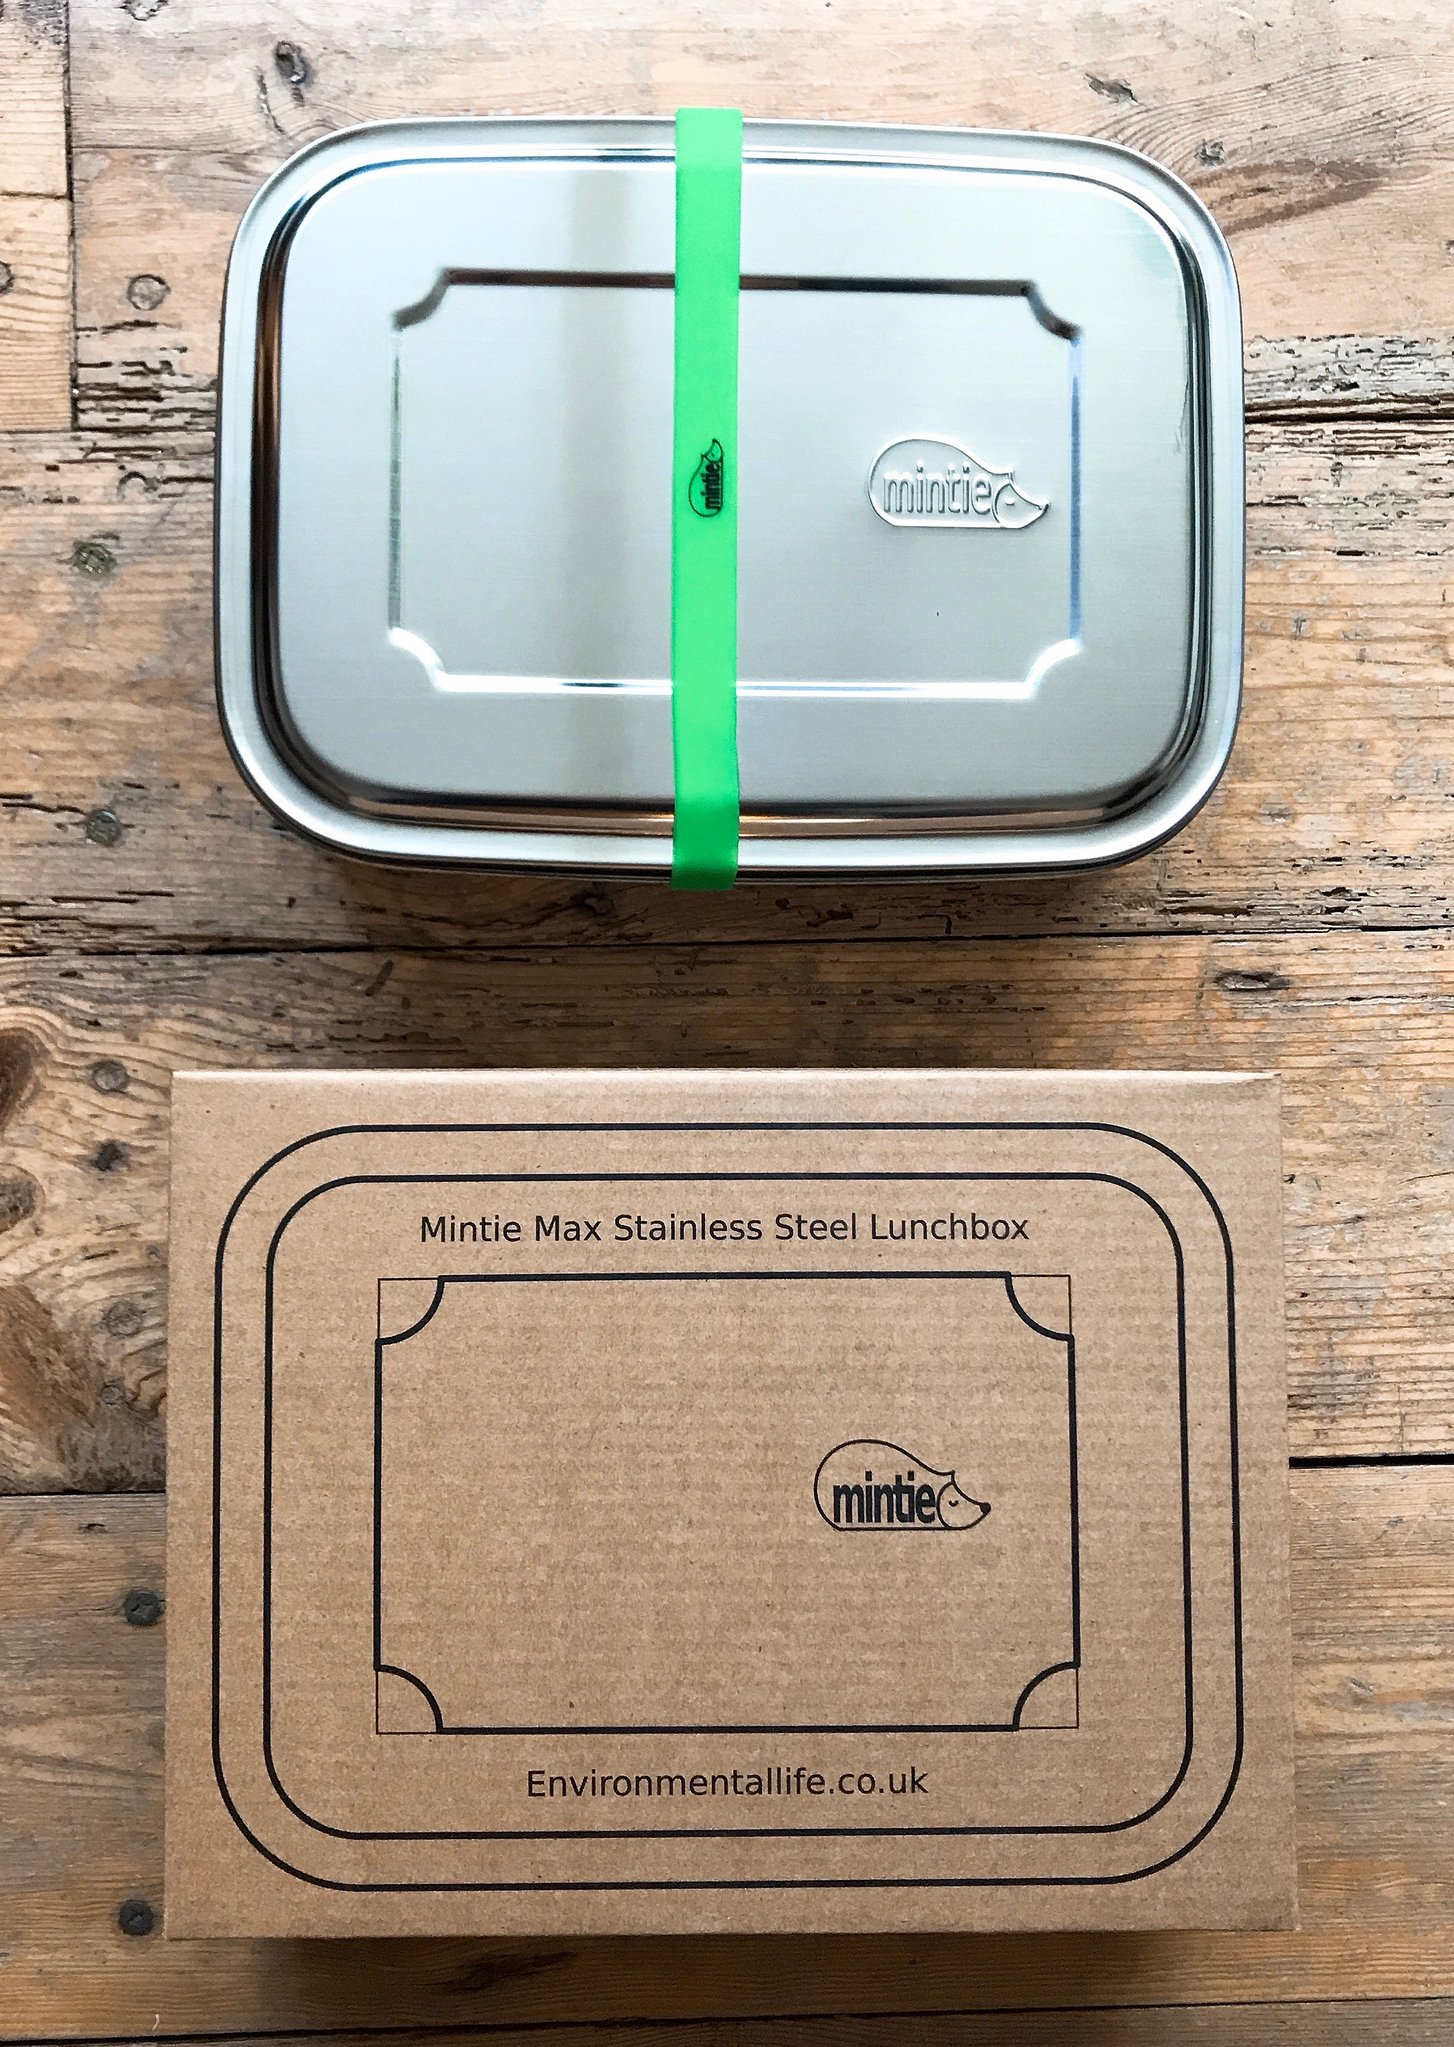 The Mintie Max is has a grand capacity of 1.8 litres, making it the ideal lunchbox for larger appetites, storing left-overs or refilling goods at your favourite zero-waste store. Measures 22.5cm x 17cm x 17cm The full Mintie collection of stainless steel lunch boxes, storage boxes and water bottles can be seen at chalkandmoss.com/brands/mintie.